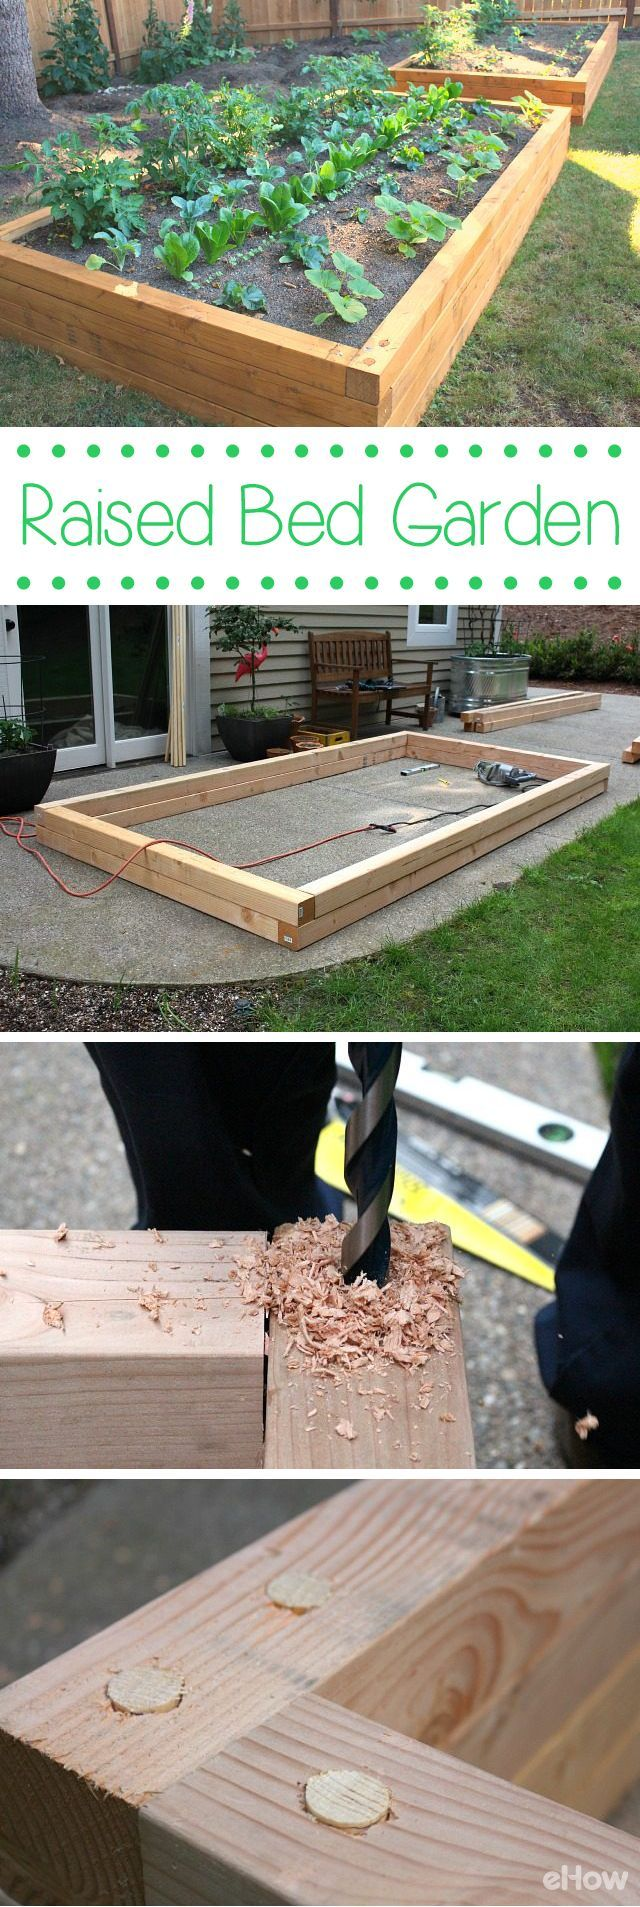 to Build a Raised Bed Garden